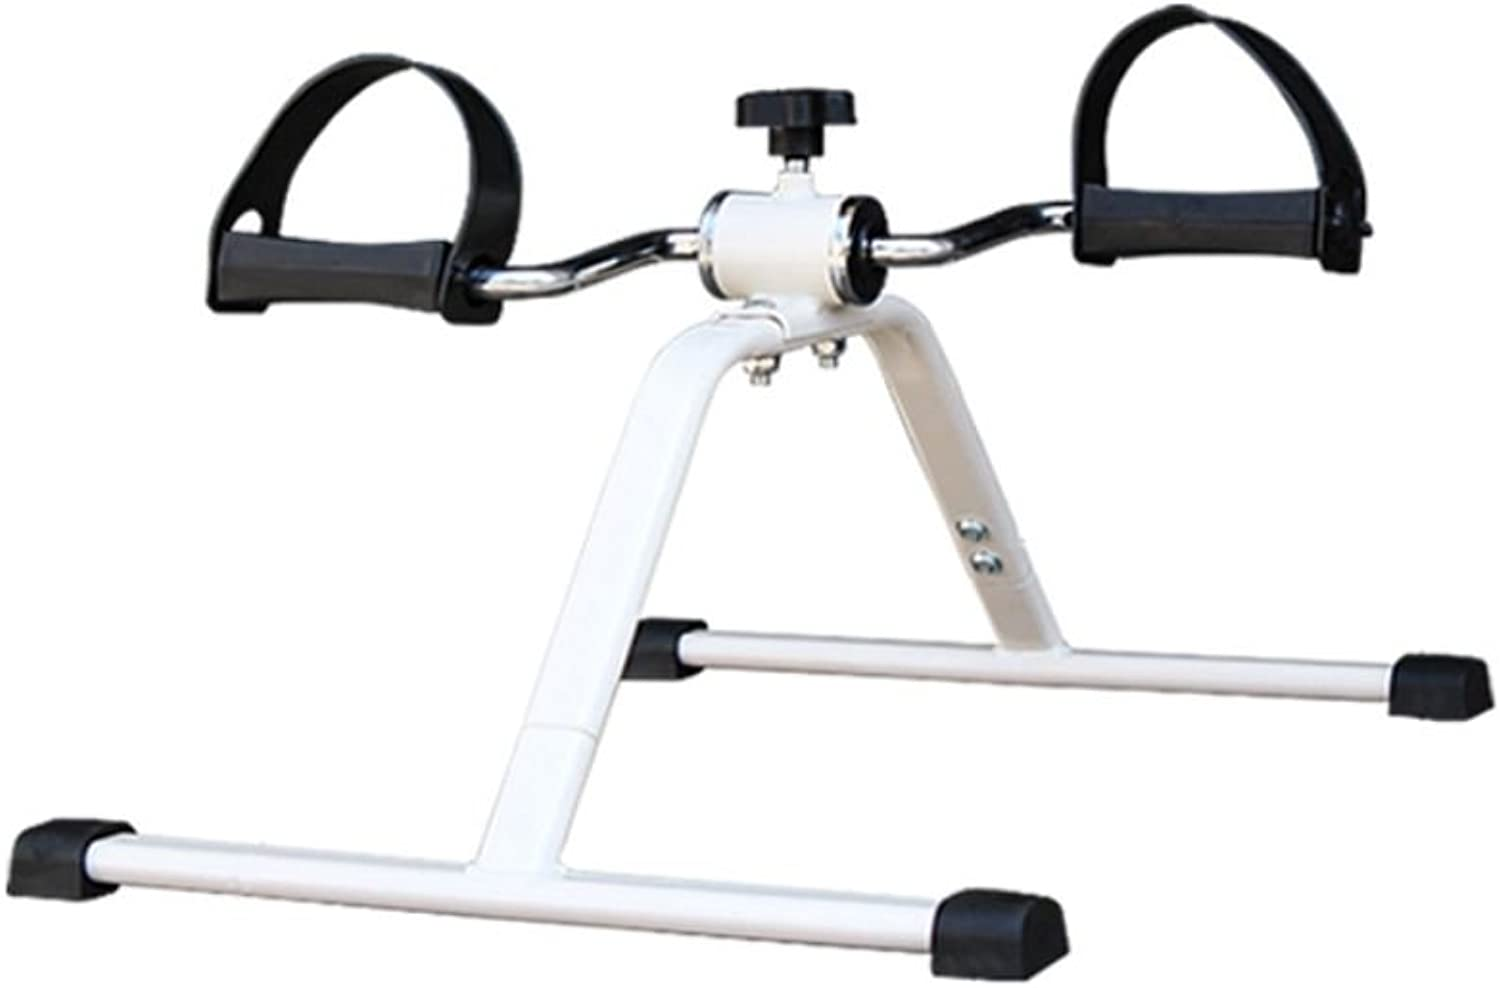 MINIMi Home Bile  Fitness Bike   space utilization exercise bike   indoor cycling   lower body workout   exercise room   healt